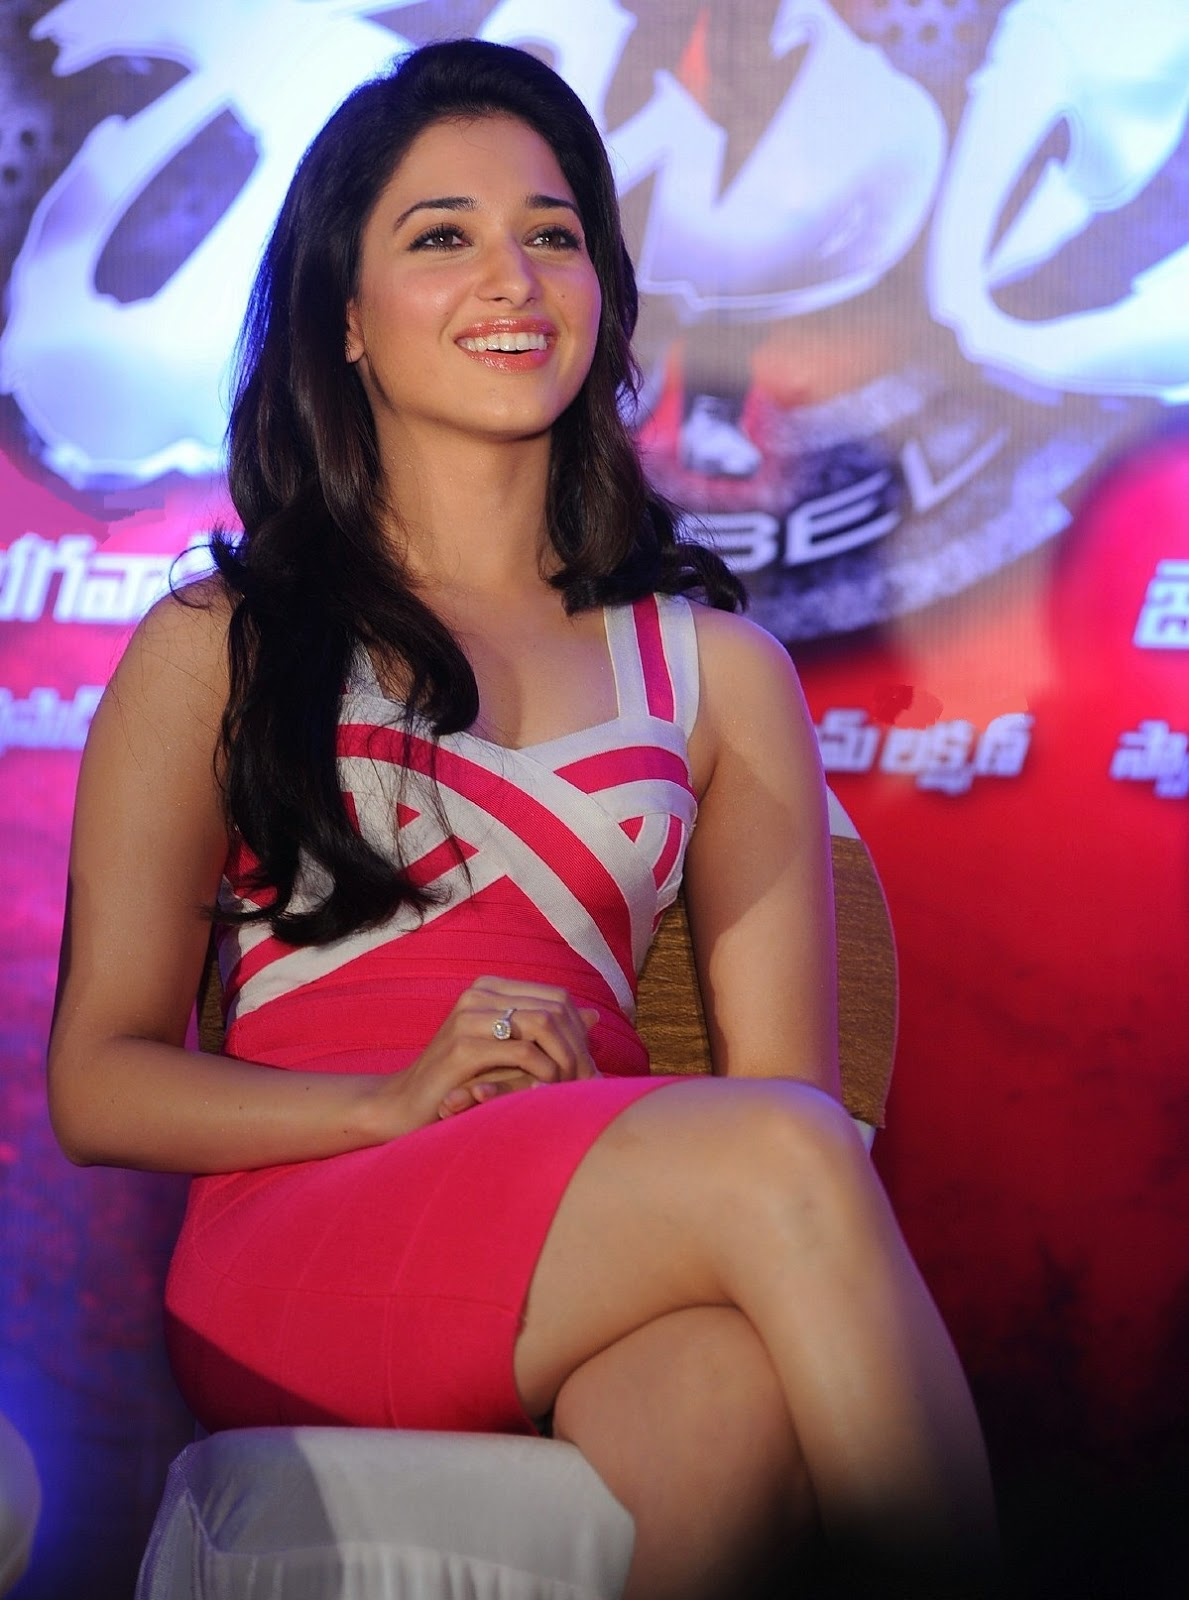 Tamanna Bhatia Looks Stunningly Sexy In Pink Skirt At Telugu Film 'Rebel' Trailer Launch